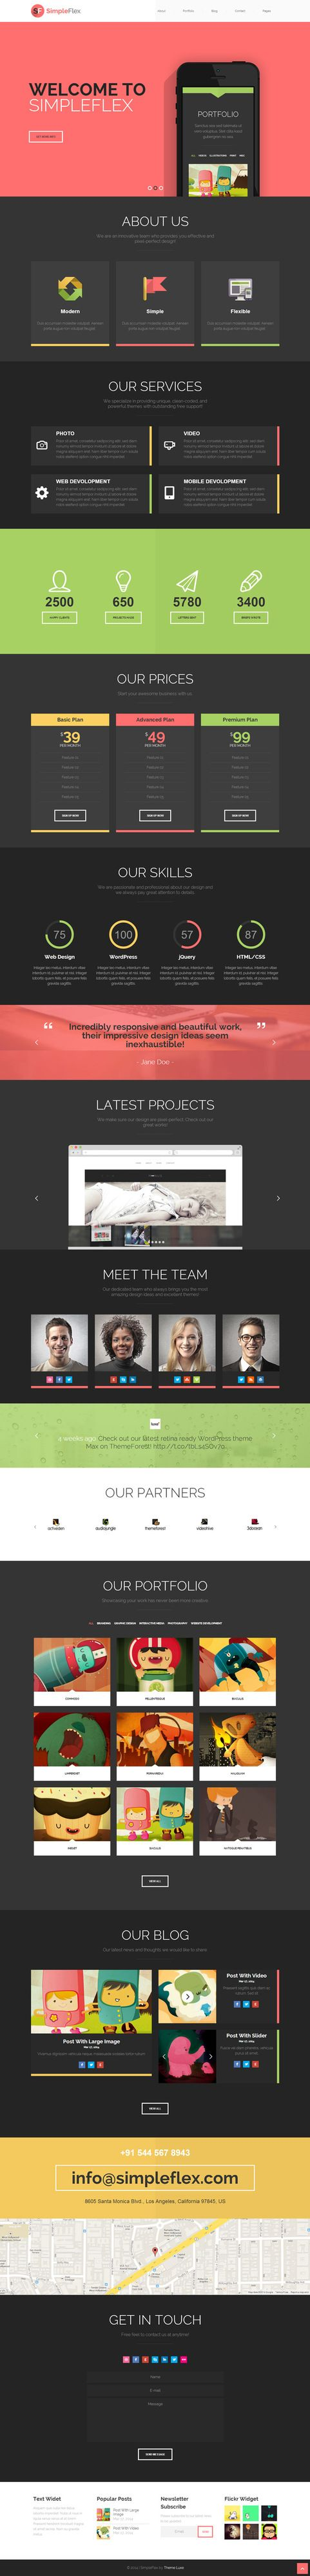 Flat One Page Wordpress Theme Beautiful Colors Great Use Of Design Principles Like The Layout And Waypoints Flat Web Design Web App Design Web Design